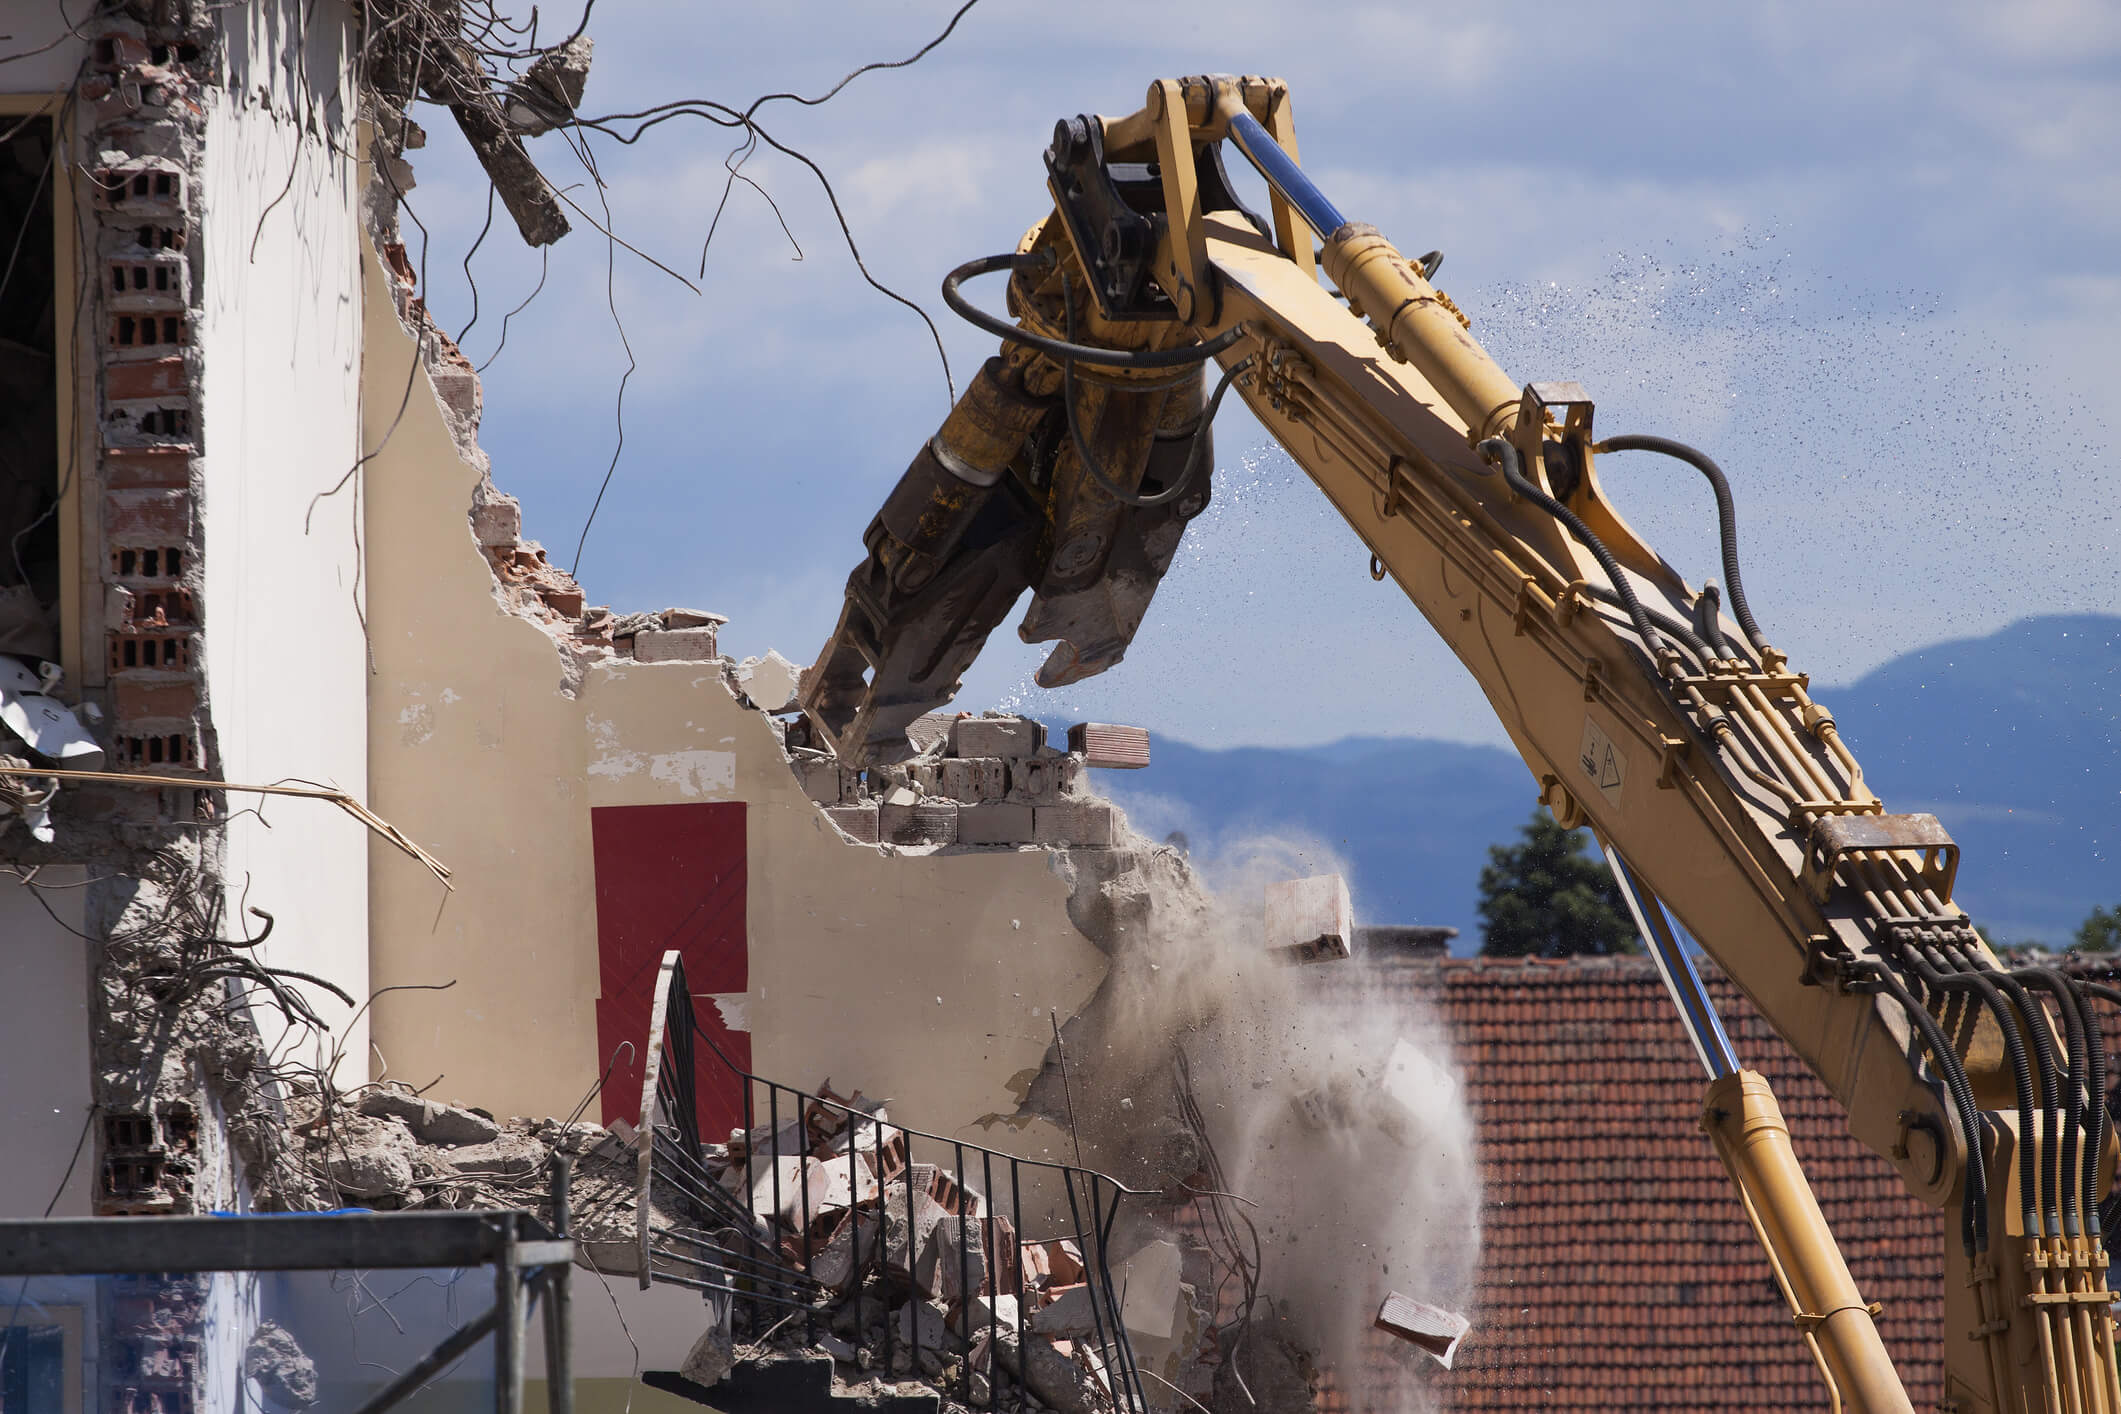 Demolition Services in North and Mid Wales